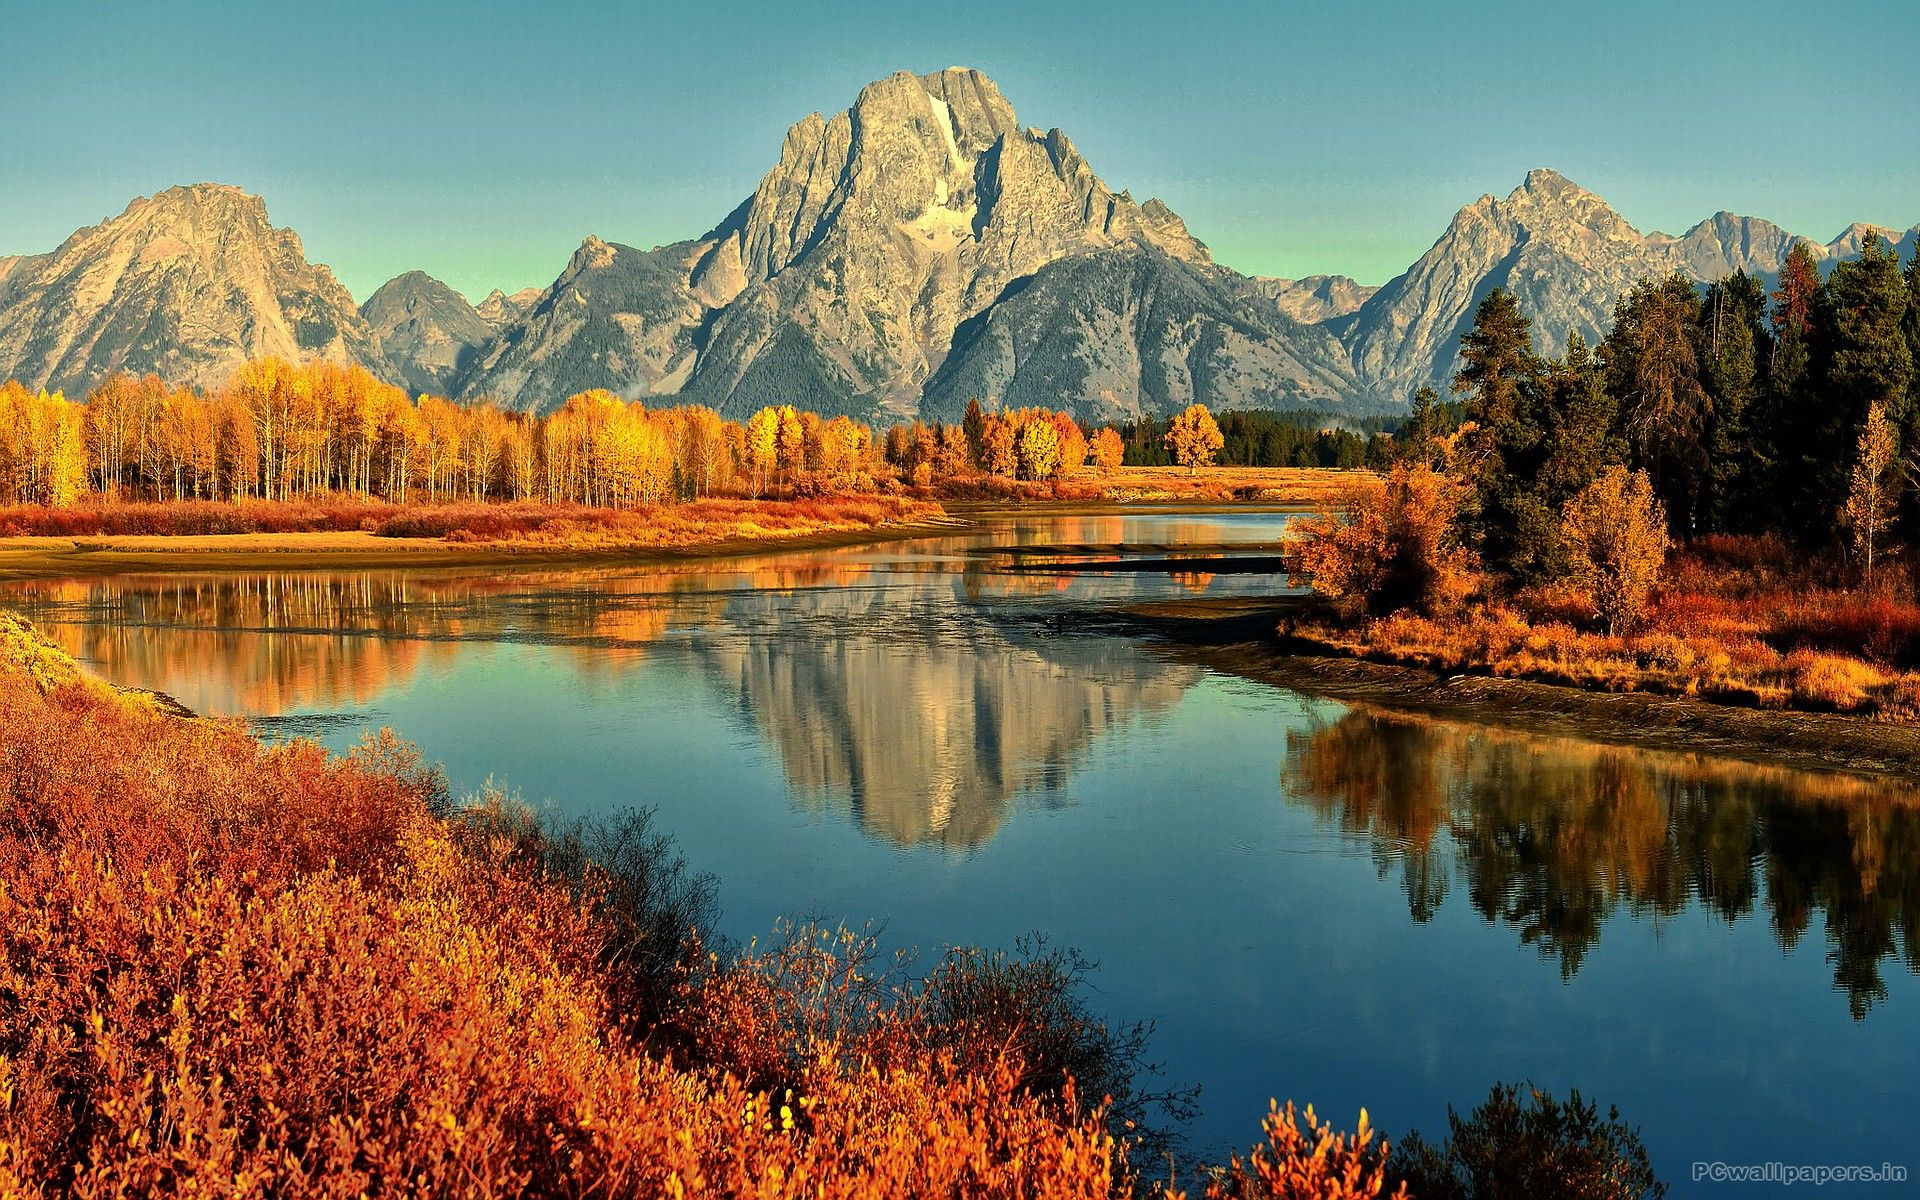 Fall Desktop Wallpaper Mountains Google Search Scenery Wallpaper Nature Pictures Autumn Scenery